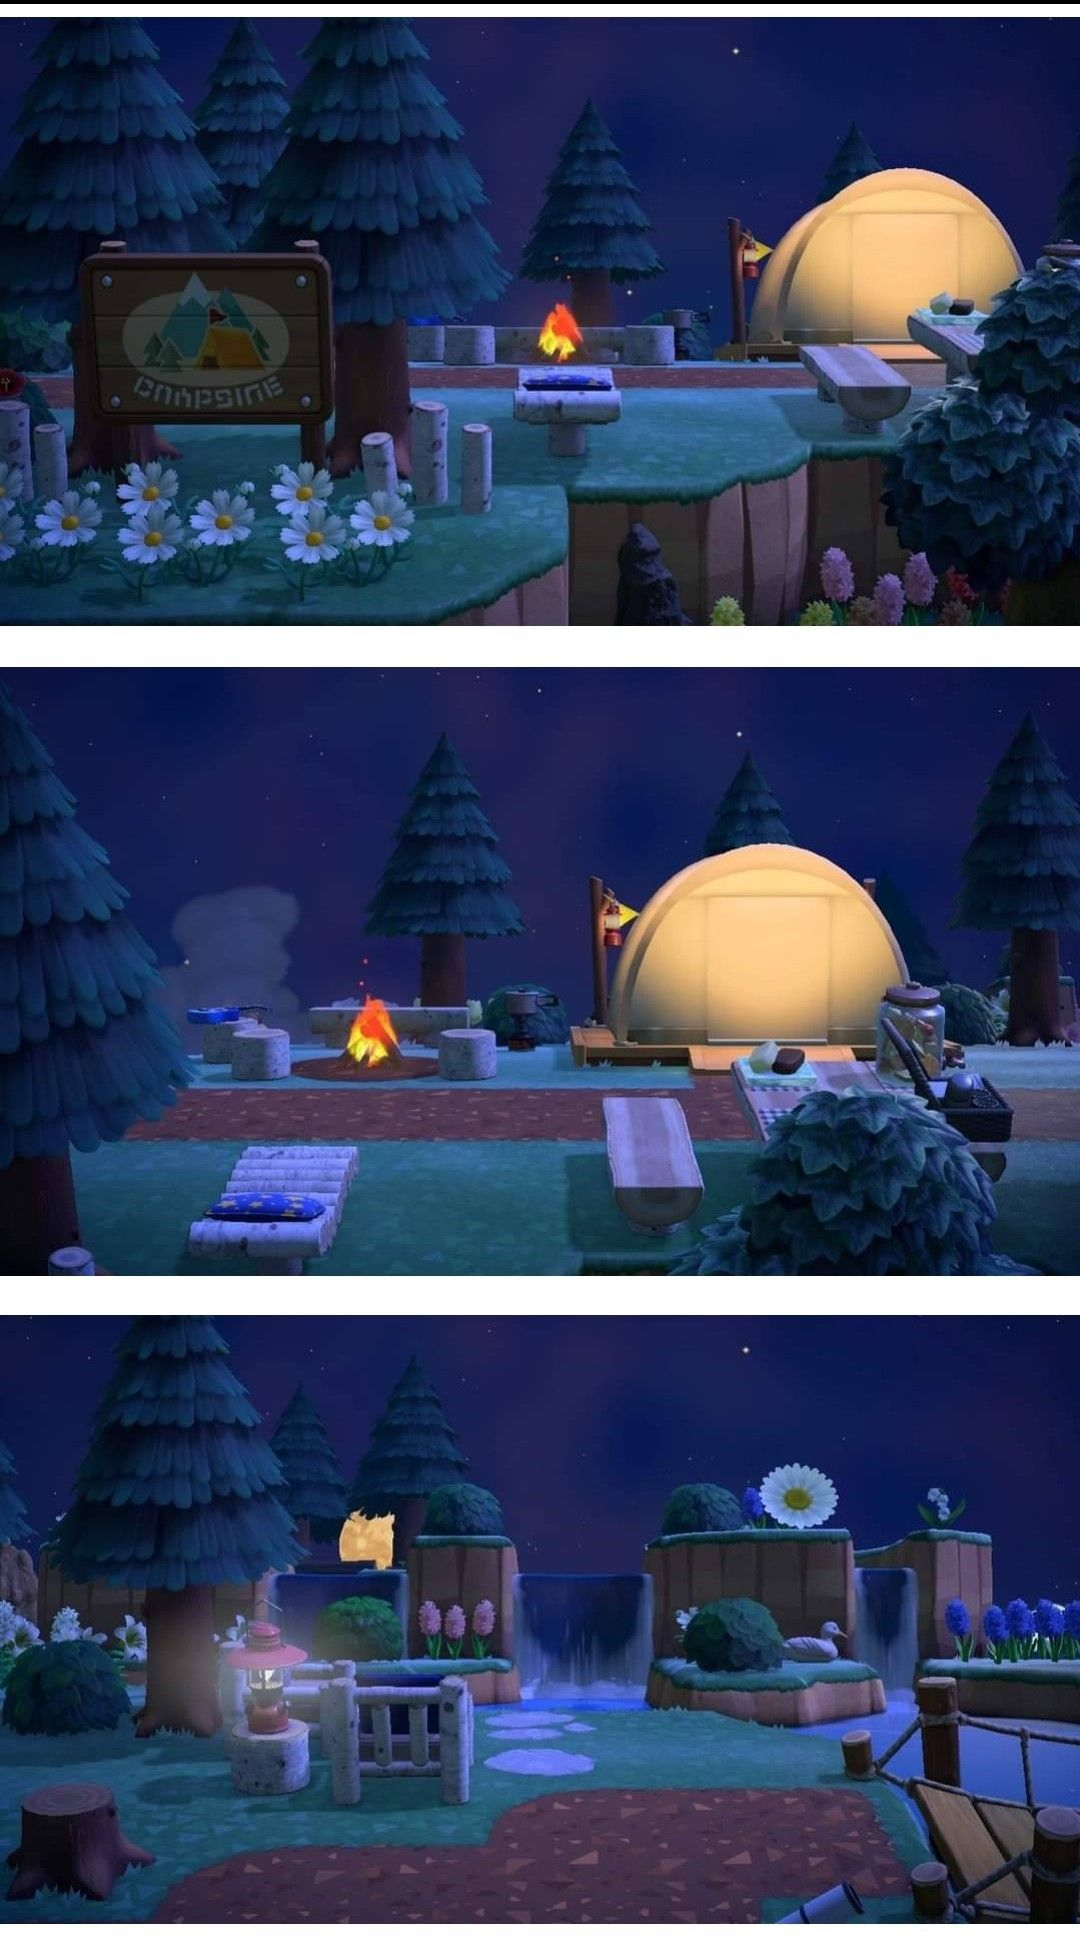 Campsite At Night In 2020 Rustic Theme Animal Crossing Outdoor Wedding